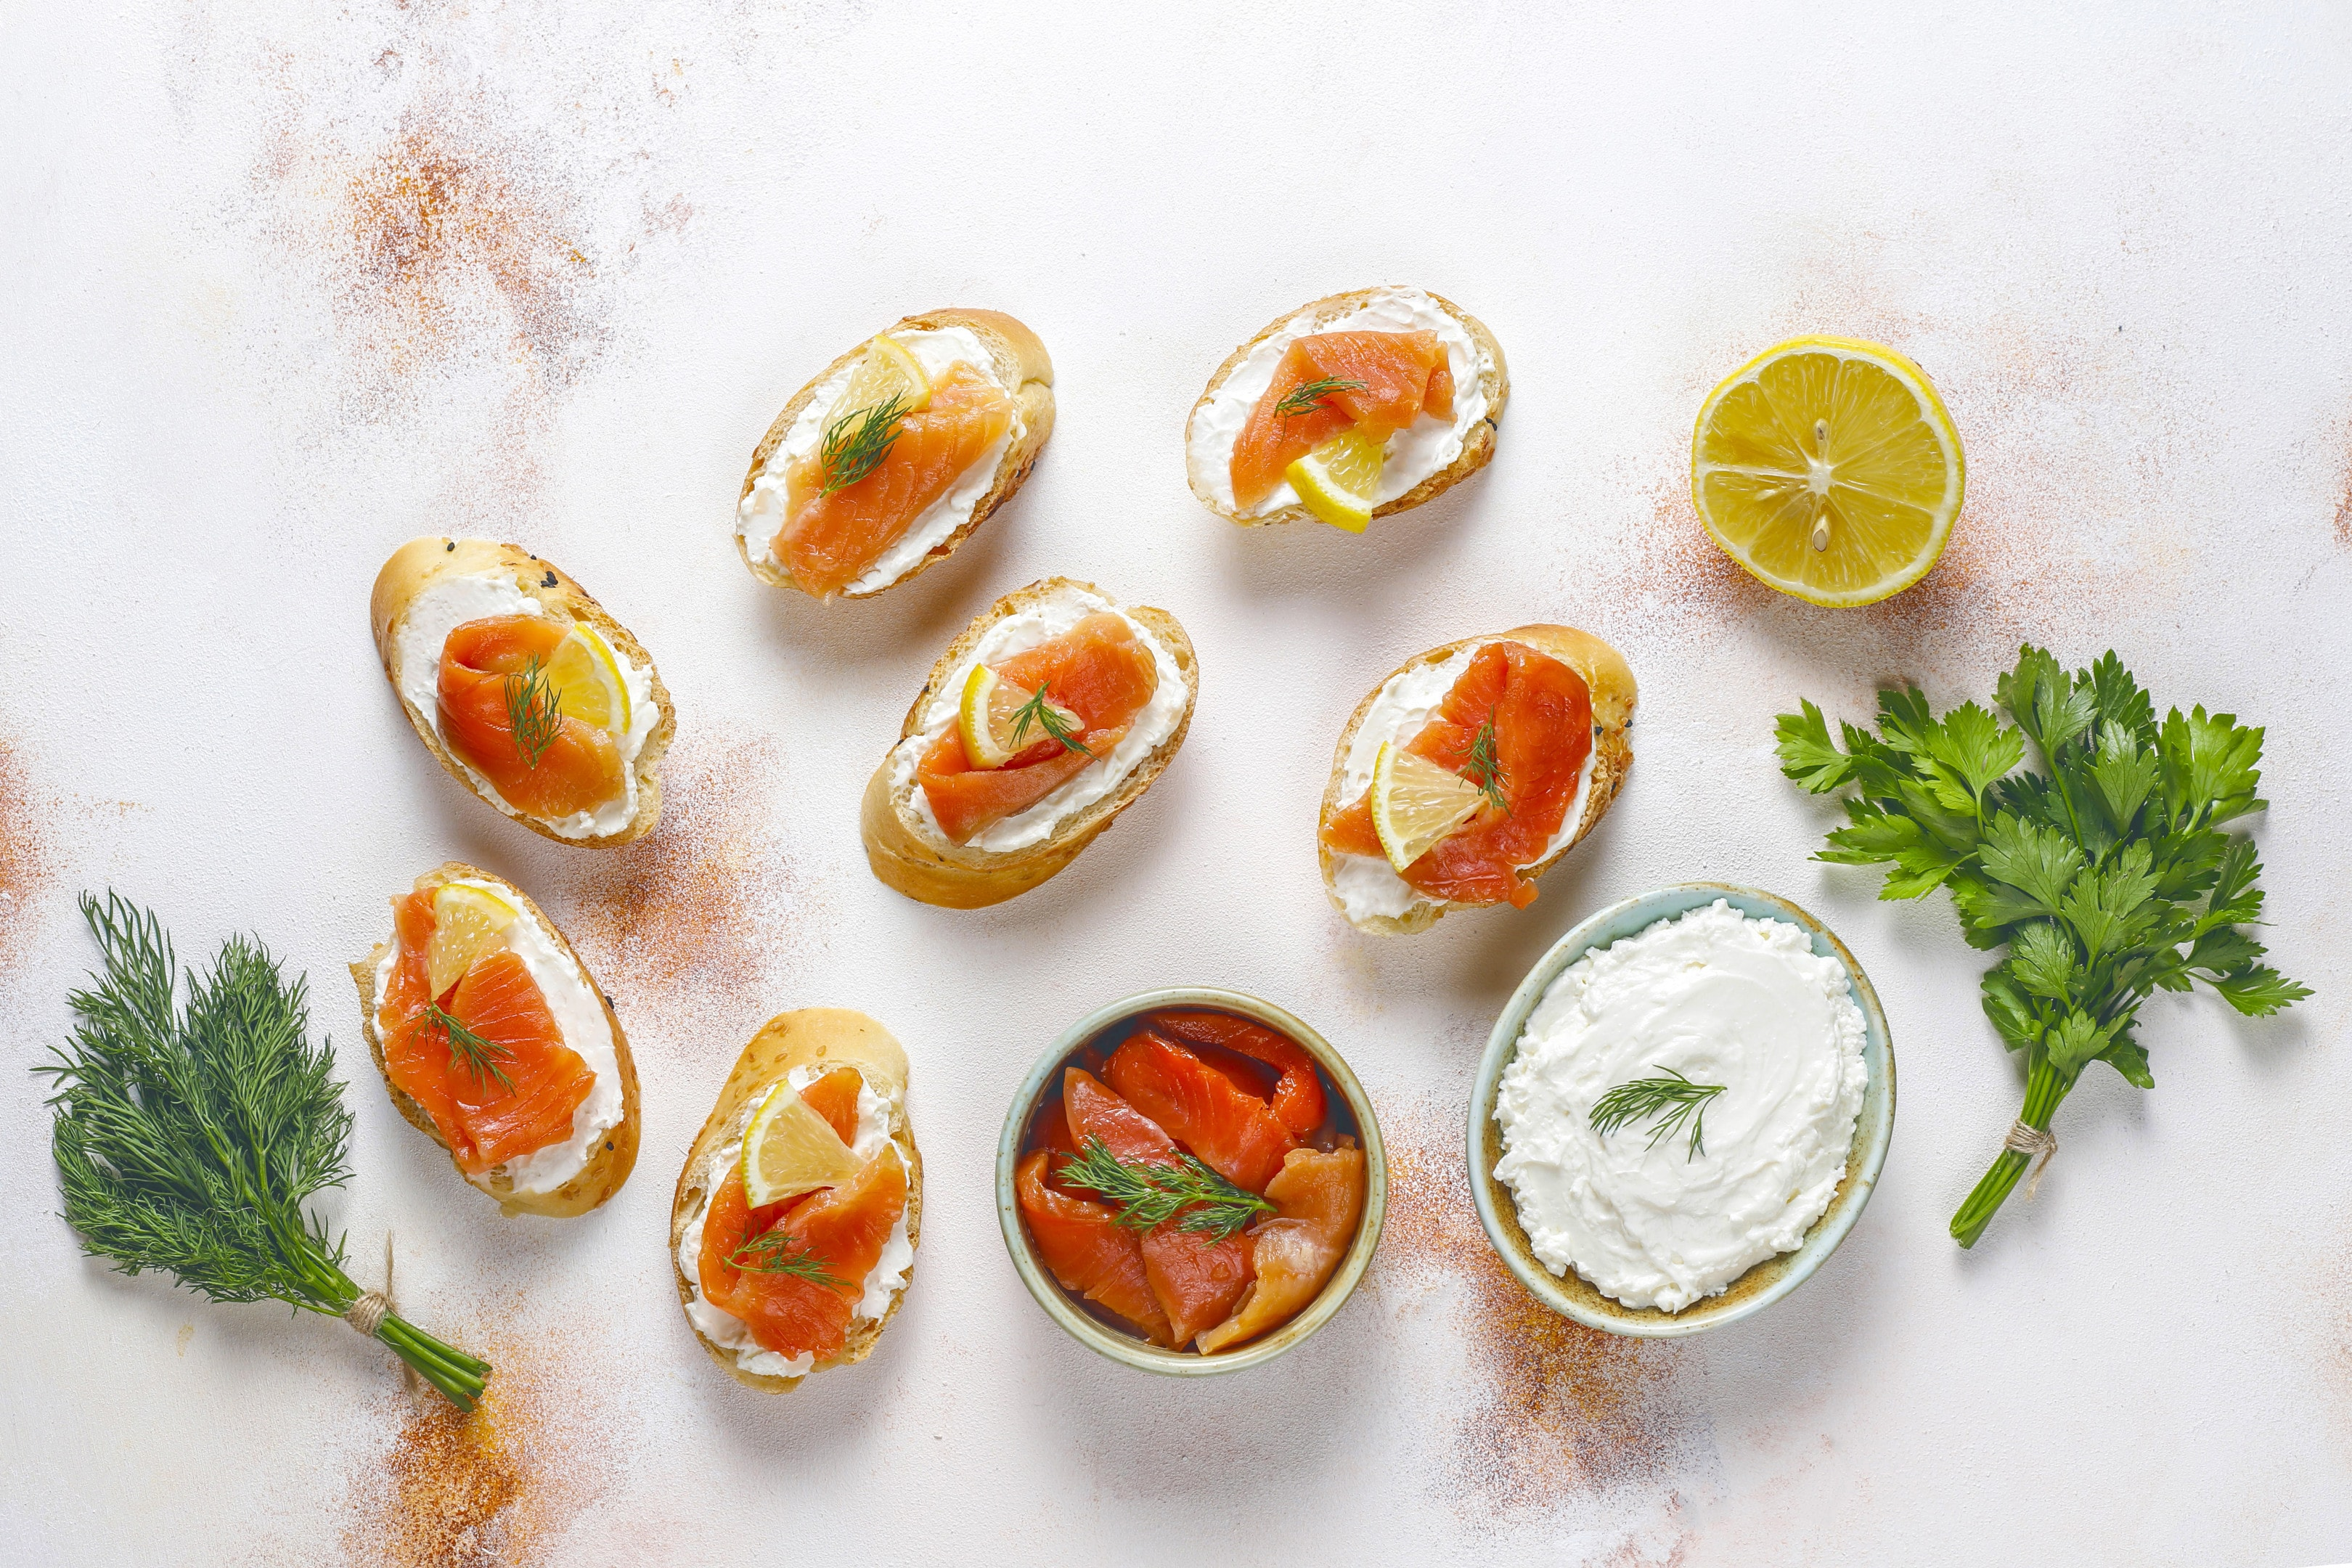 Sandwiches with smoked salmon, cream cheese and dill